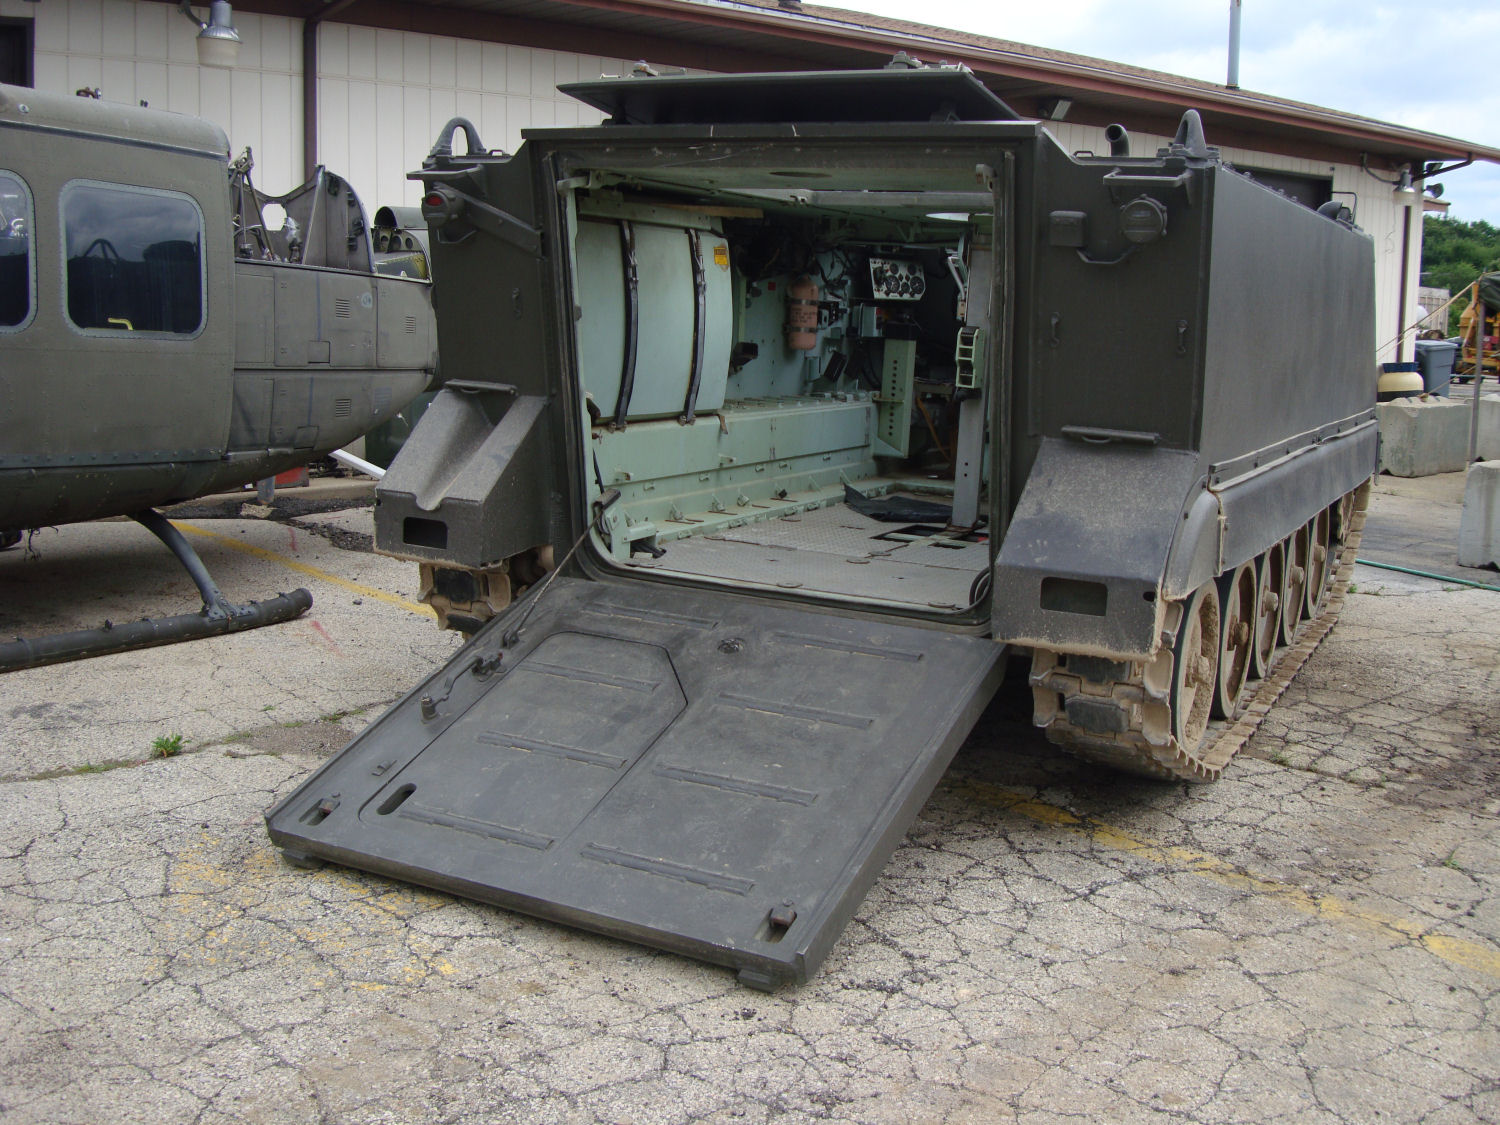 M113a1 For Sale >> M113 Apc For Sale | Upcomingcarshq.com